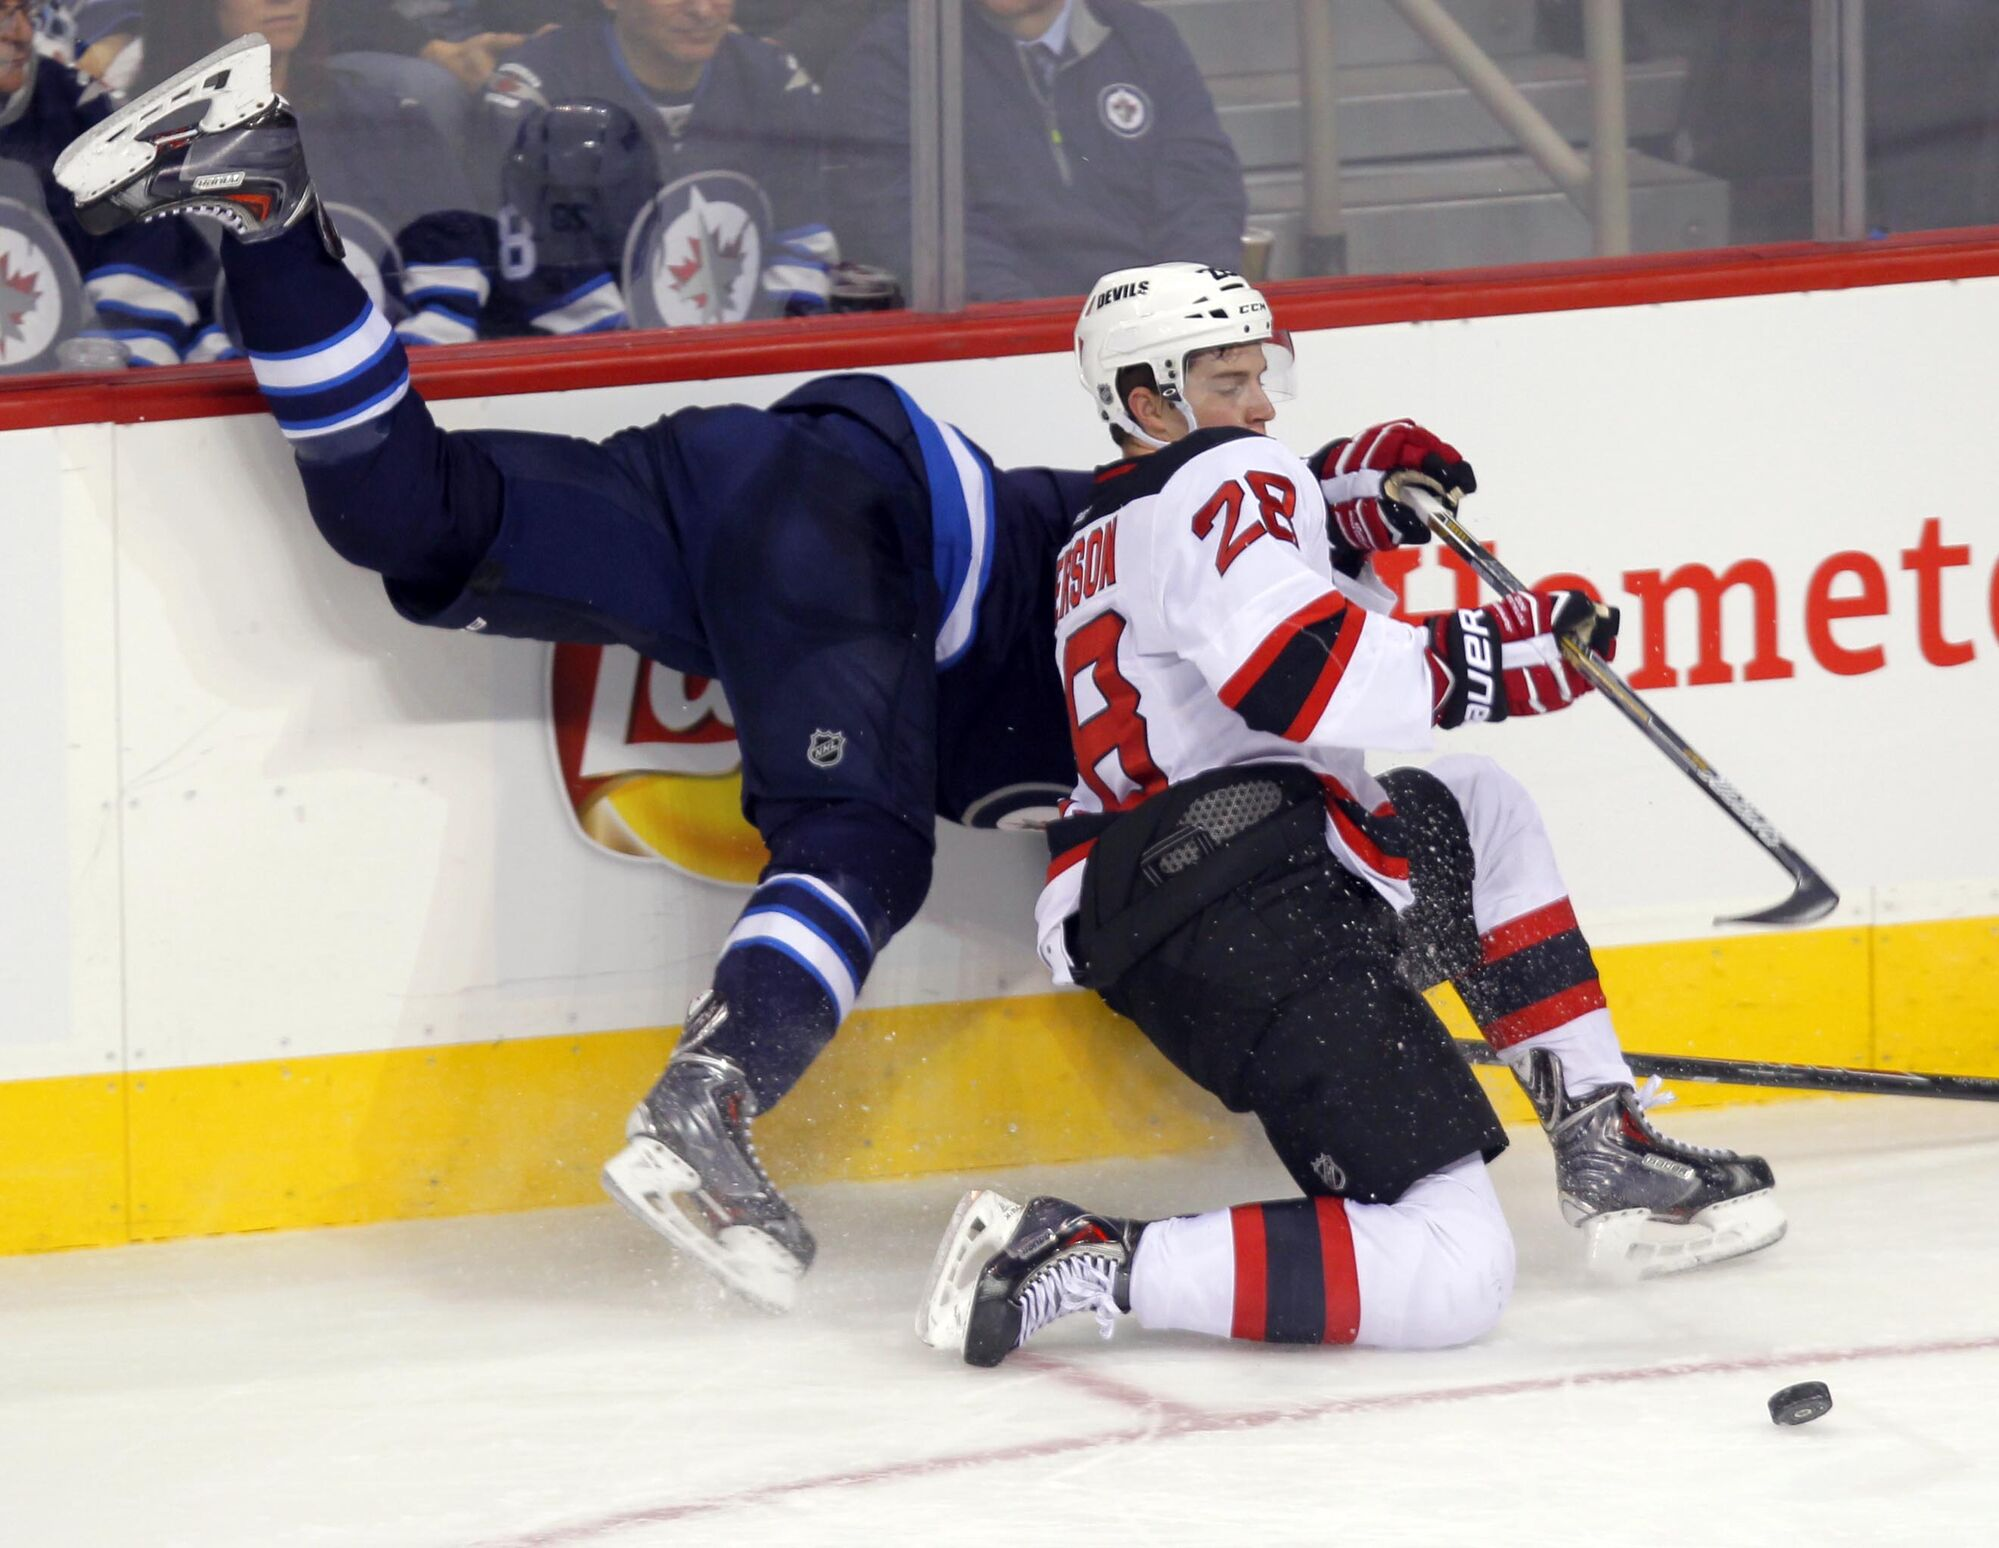 promo code f3423 98e00 Gallery: New Jersey Devils vs. Winnipeg Jets, Nov. 18, 2014 ...